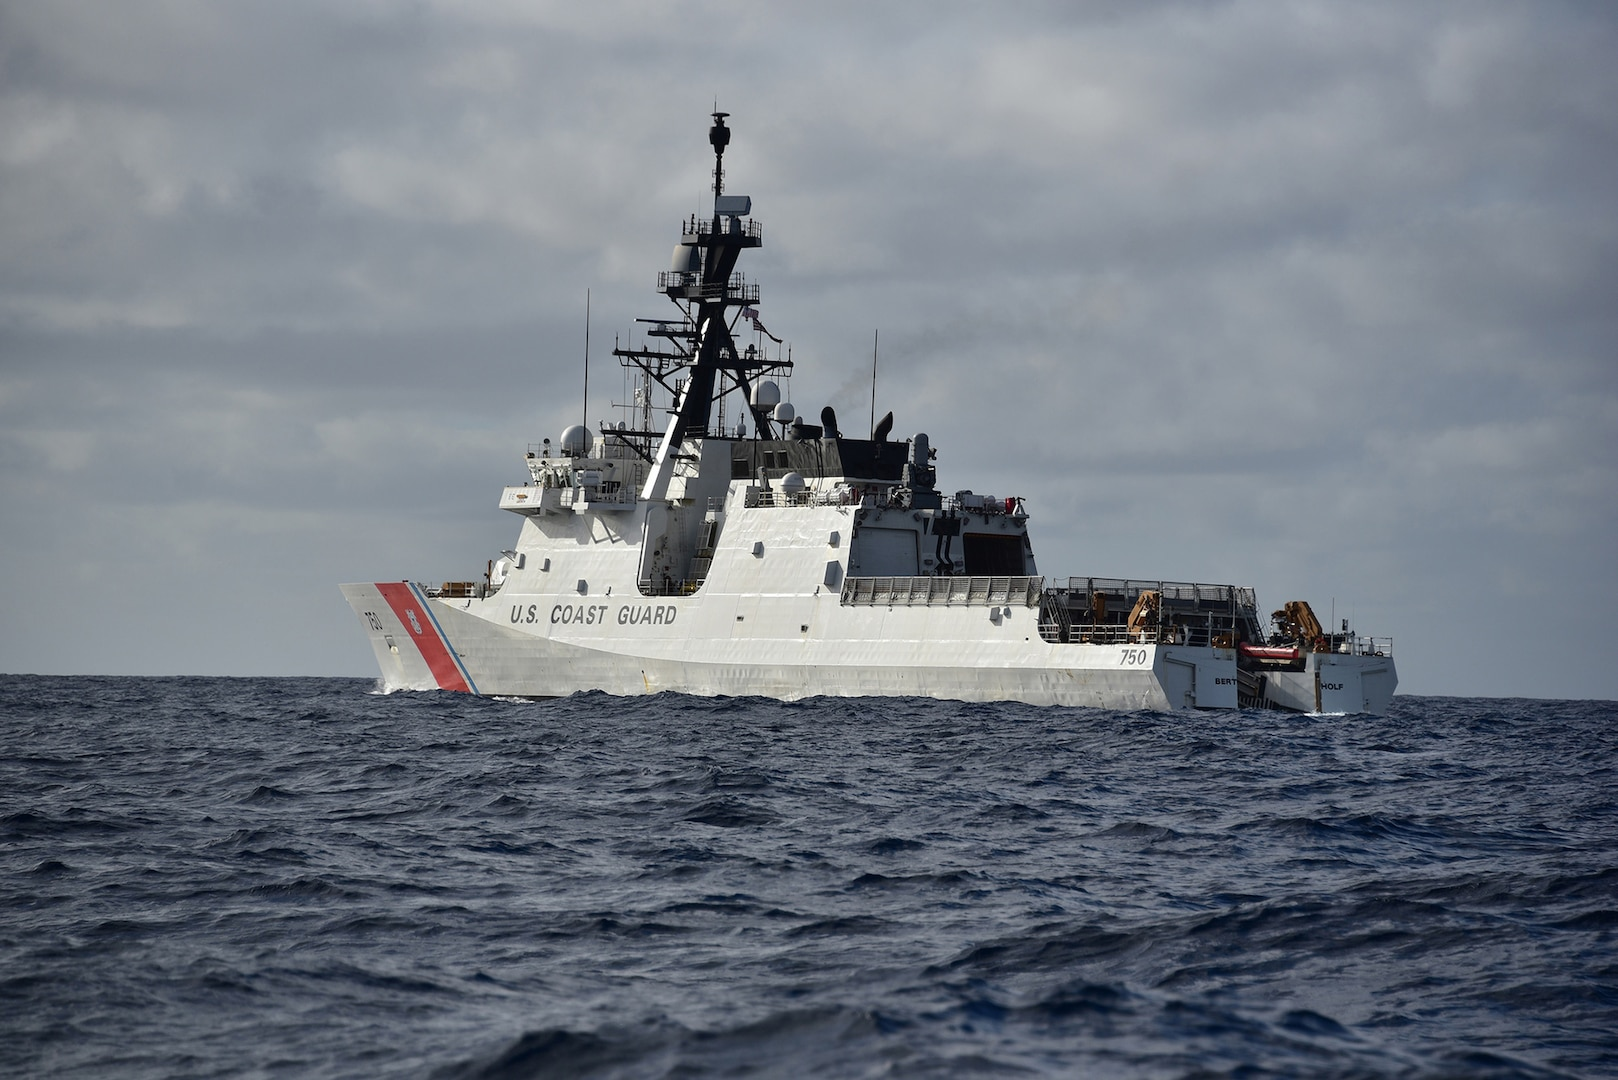 U.S. Coast Guard Enforces North Korea Sanctions in the East China Sea